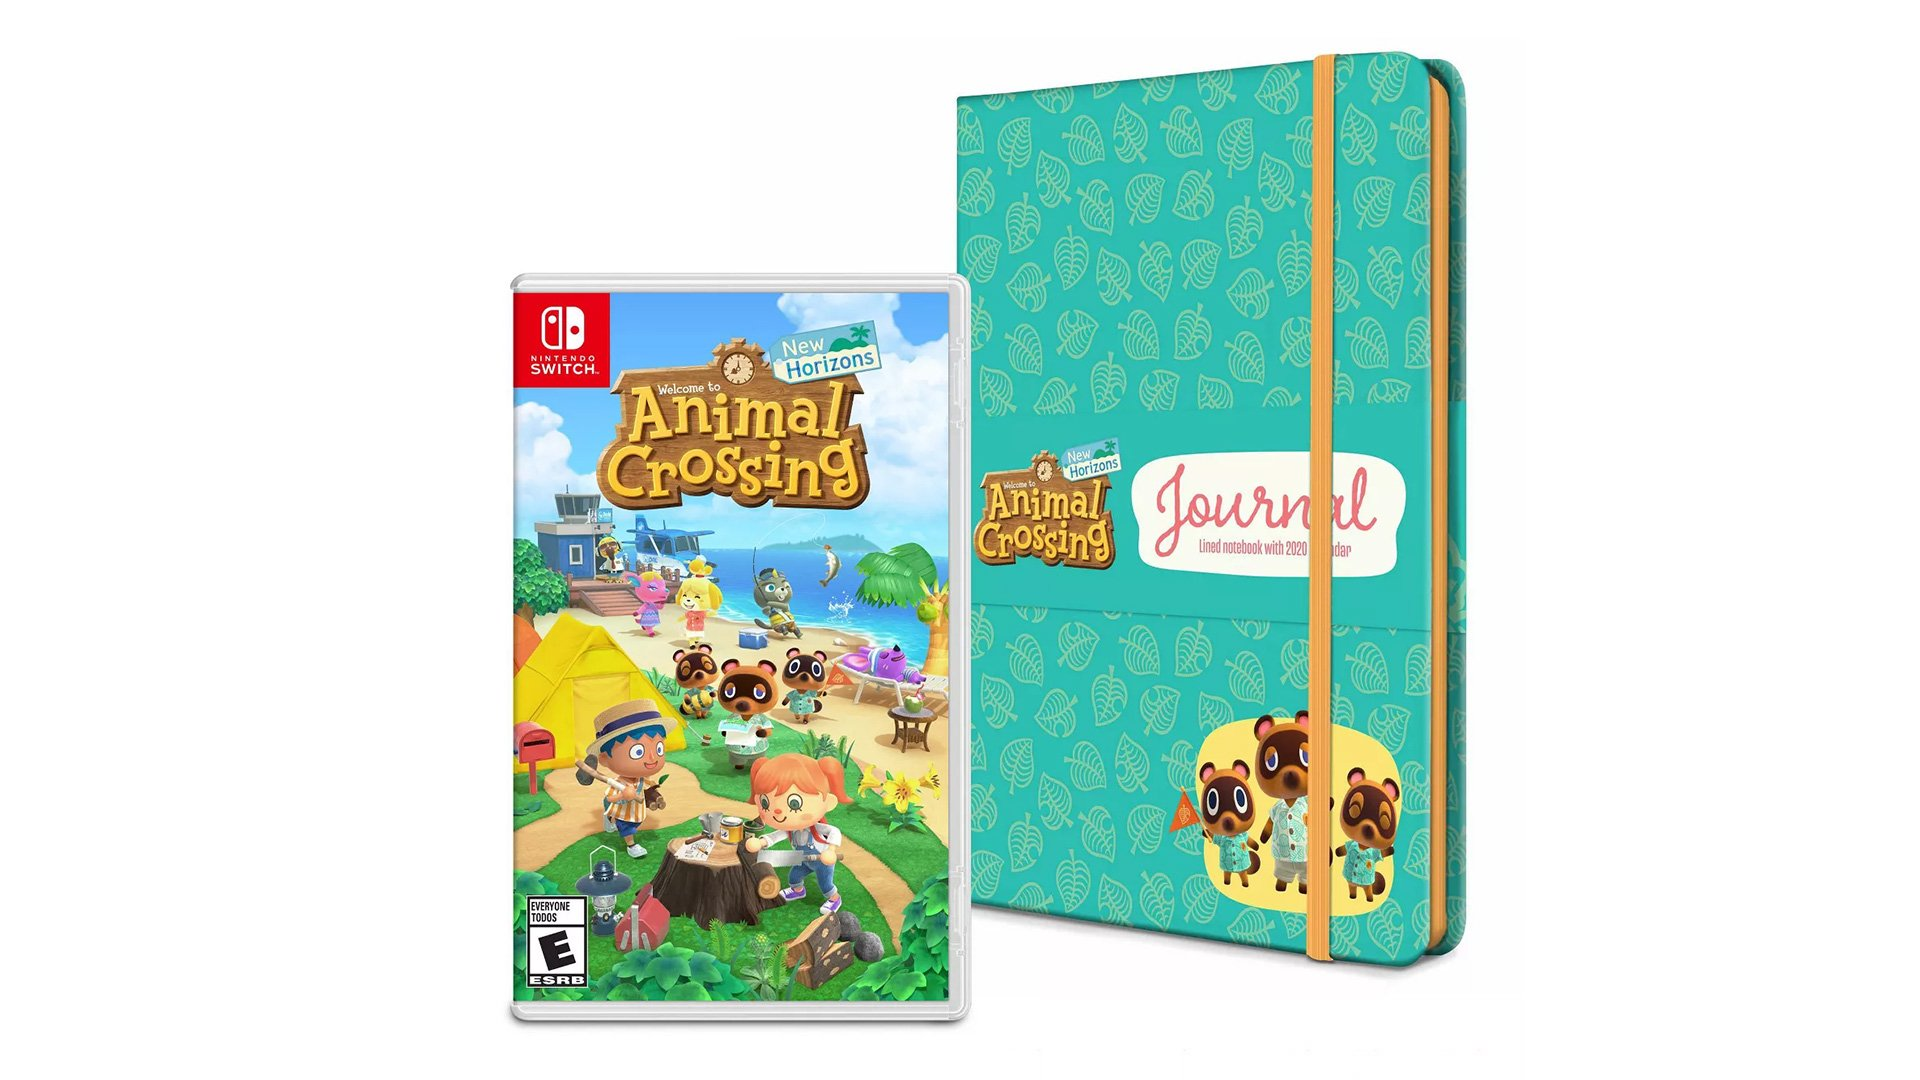 Target Is Throwing In A Journal With Animal Crossing New Horizons